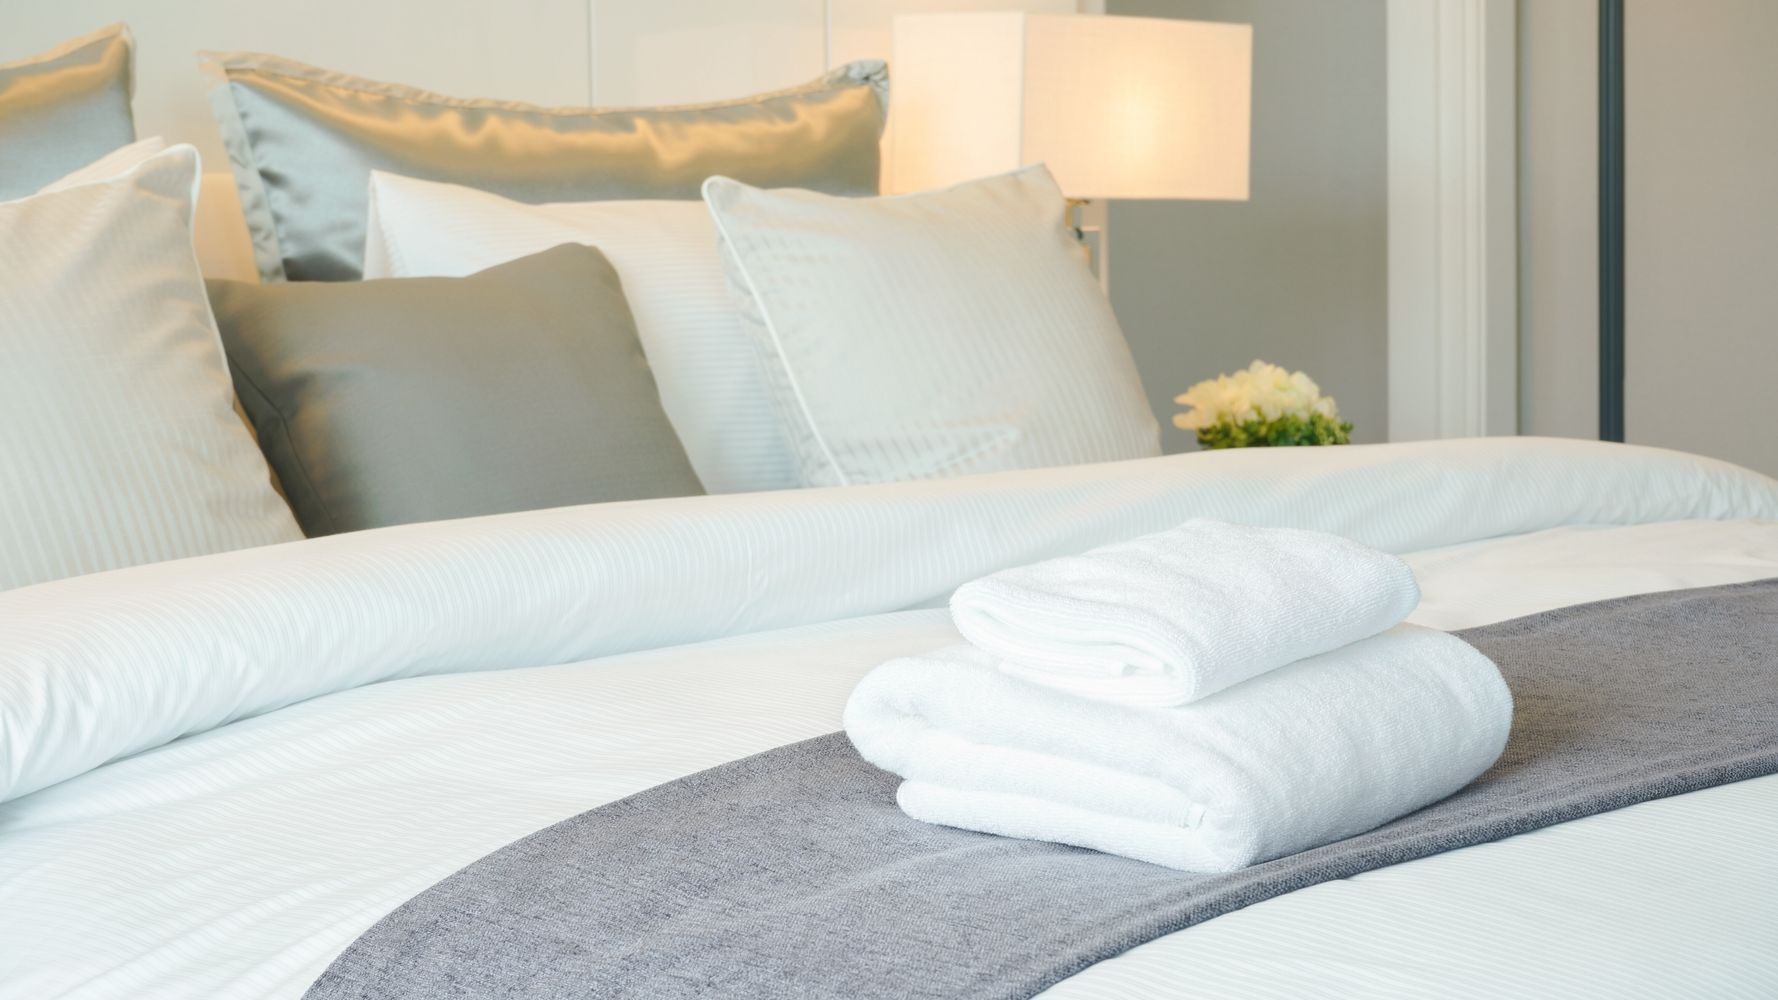 20 Tricks You Can Use to Score a Cheap Hotel Room | HuffPost